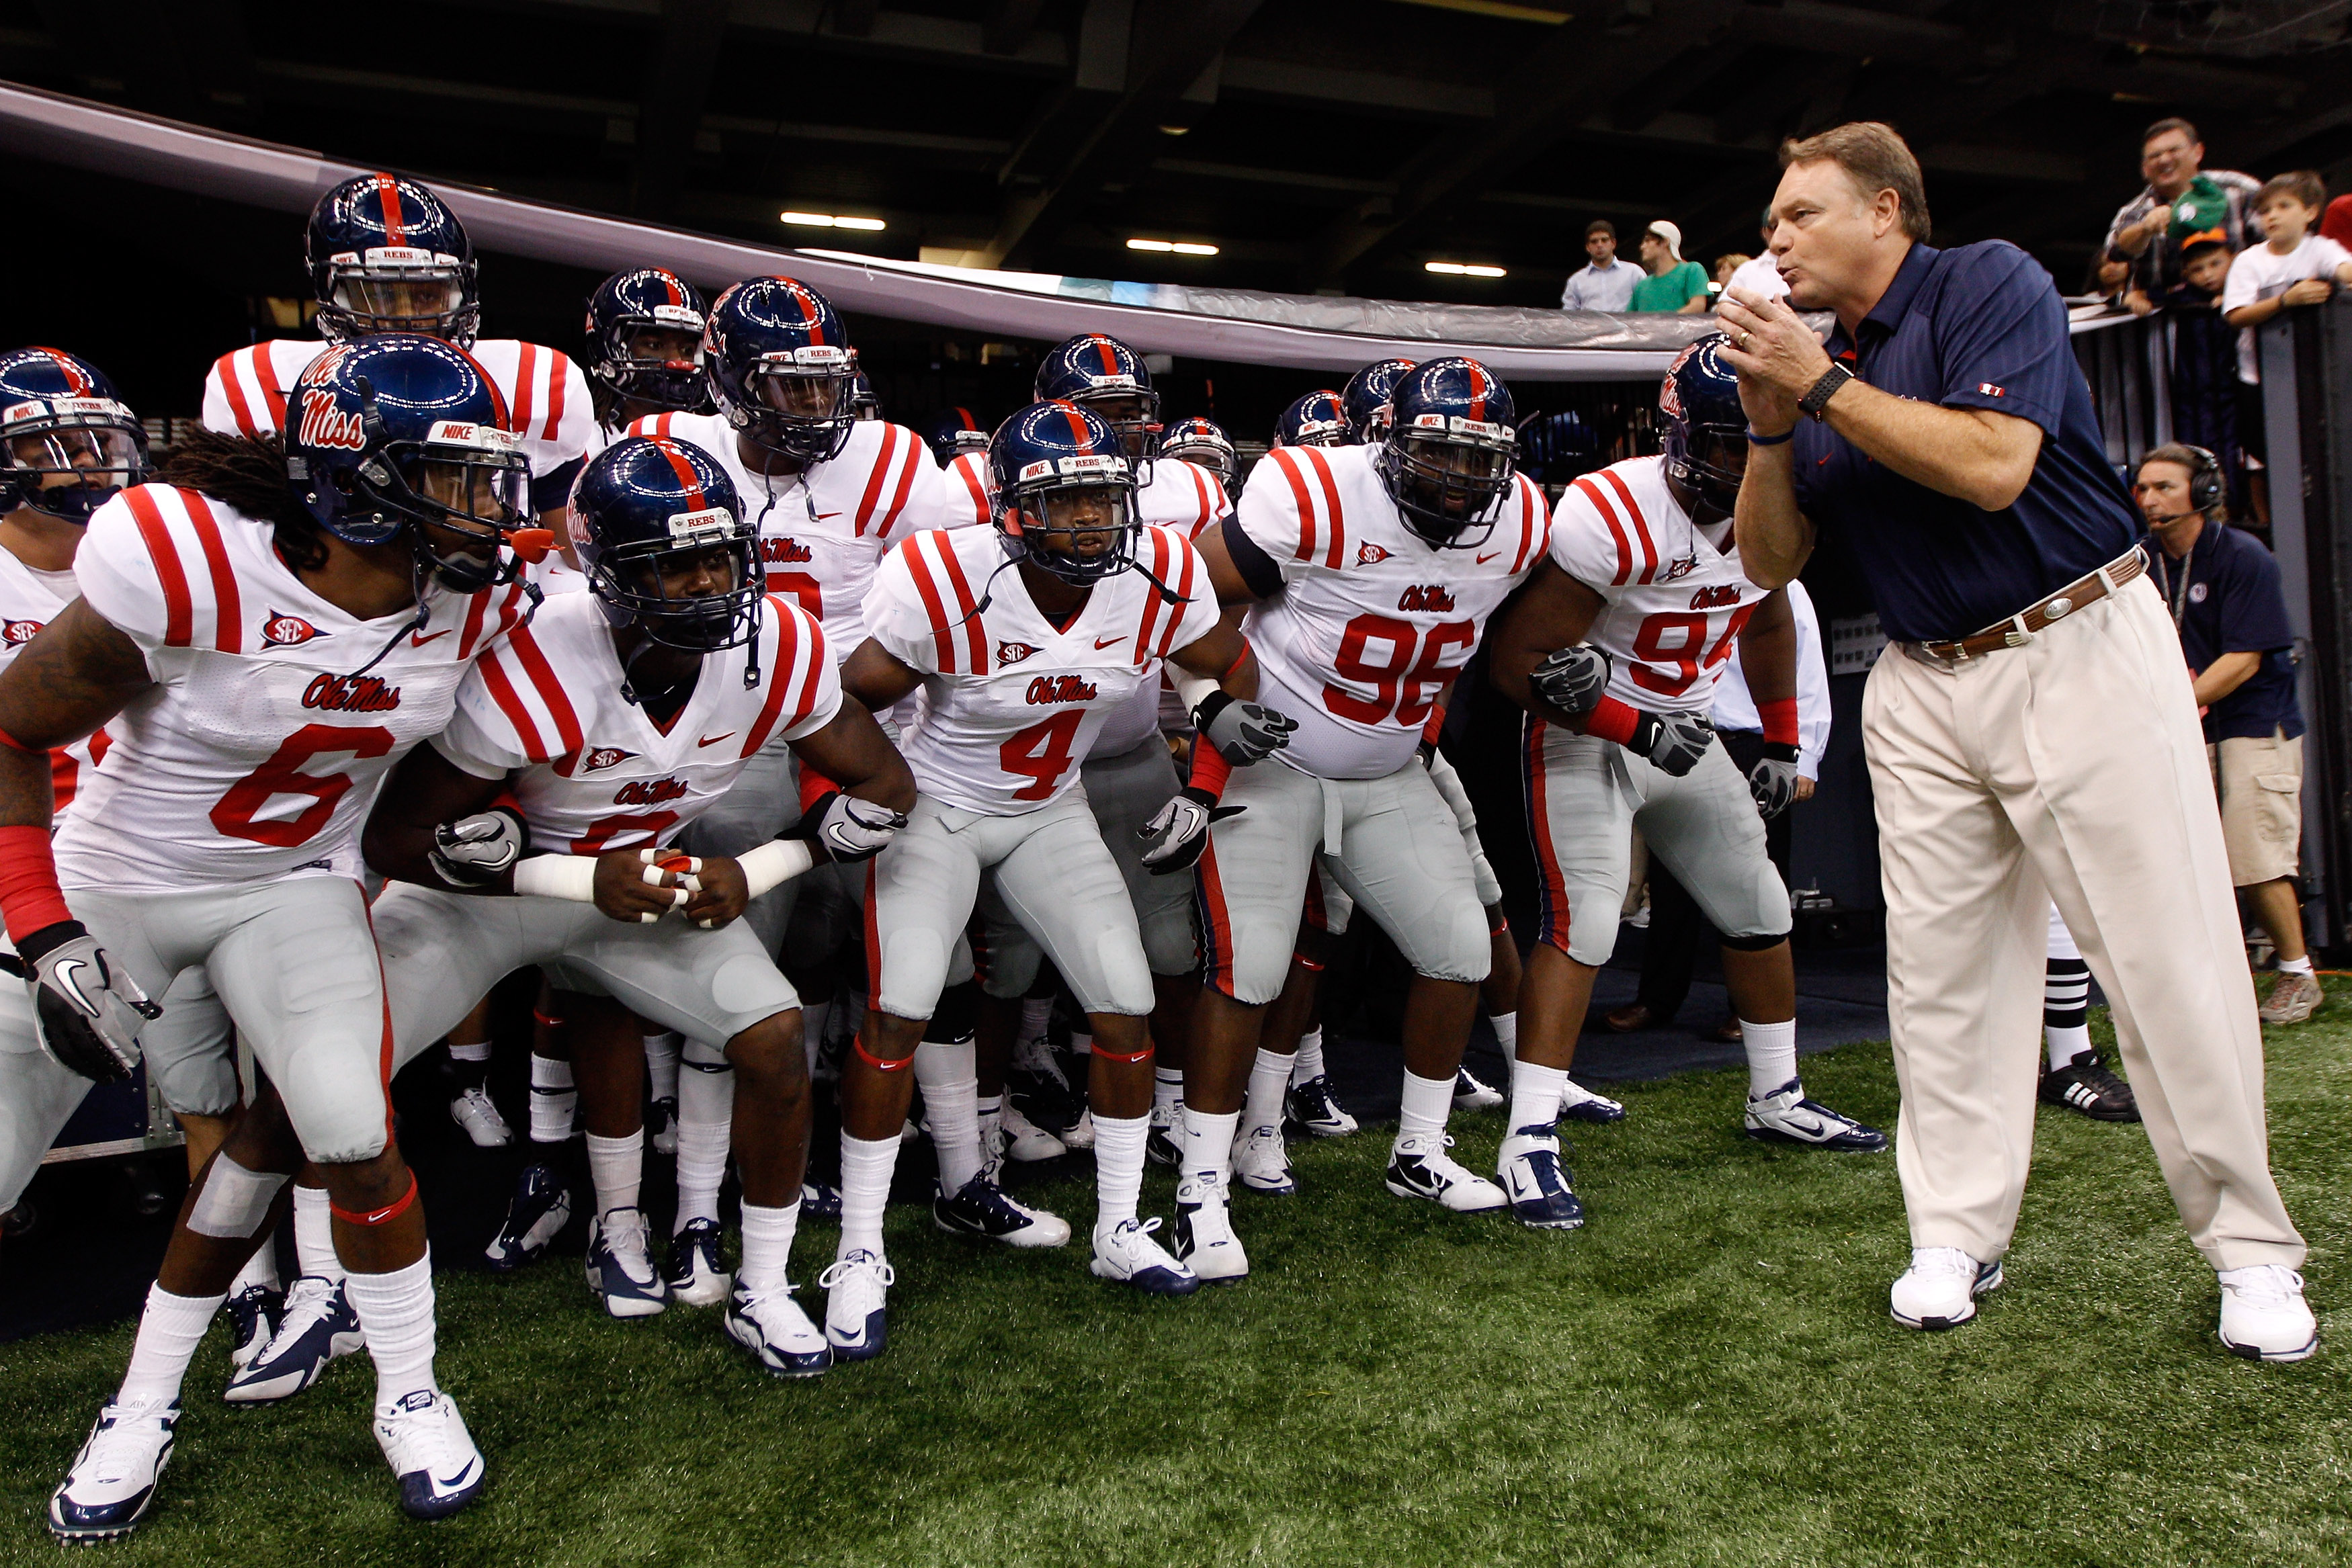 NEW ORLEANS - SEPTEMBER 11:  Head coach Houston Nutt of the Ole Miss Rebels waits to take the field with his team before playing the Tulane Green Wave at the Louisiana Superdome on September 11, 2010 in New Orleans, Louisiana.  (Photo by Chris Graythen/Ge